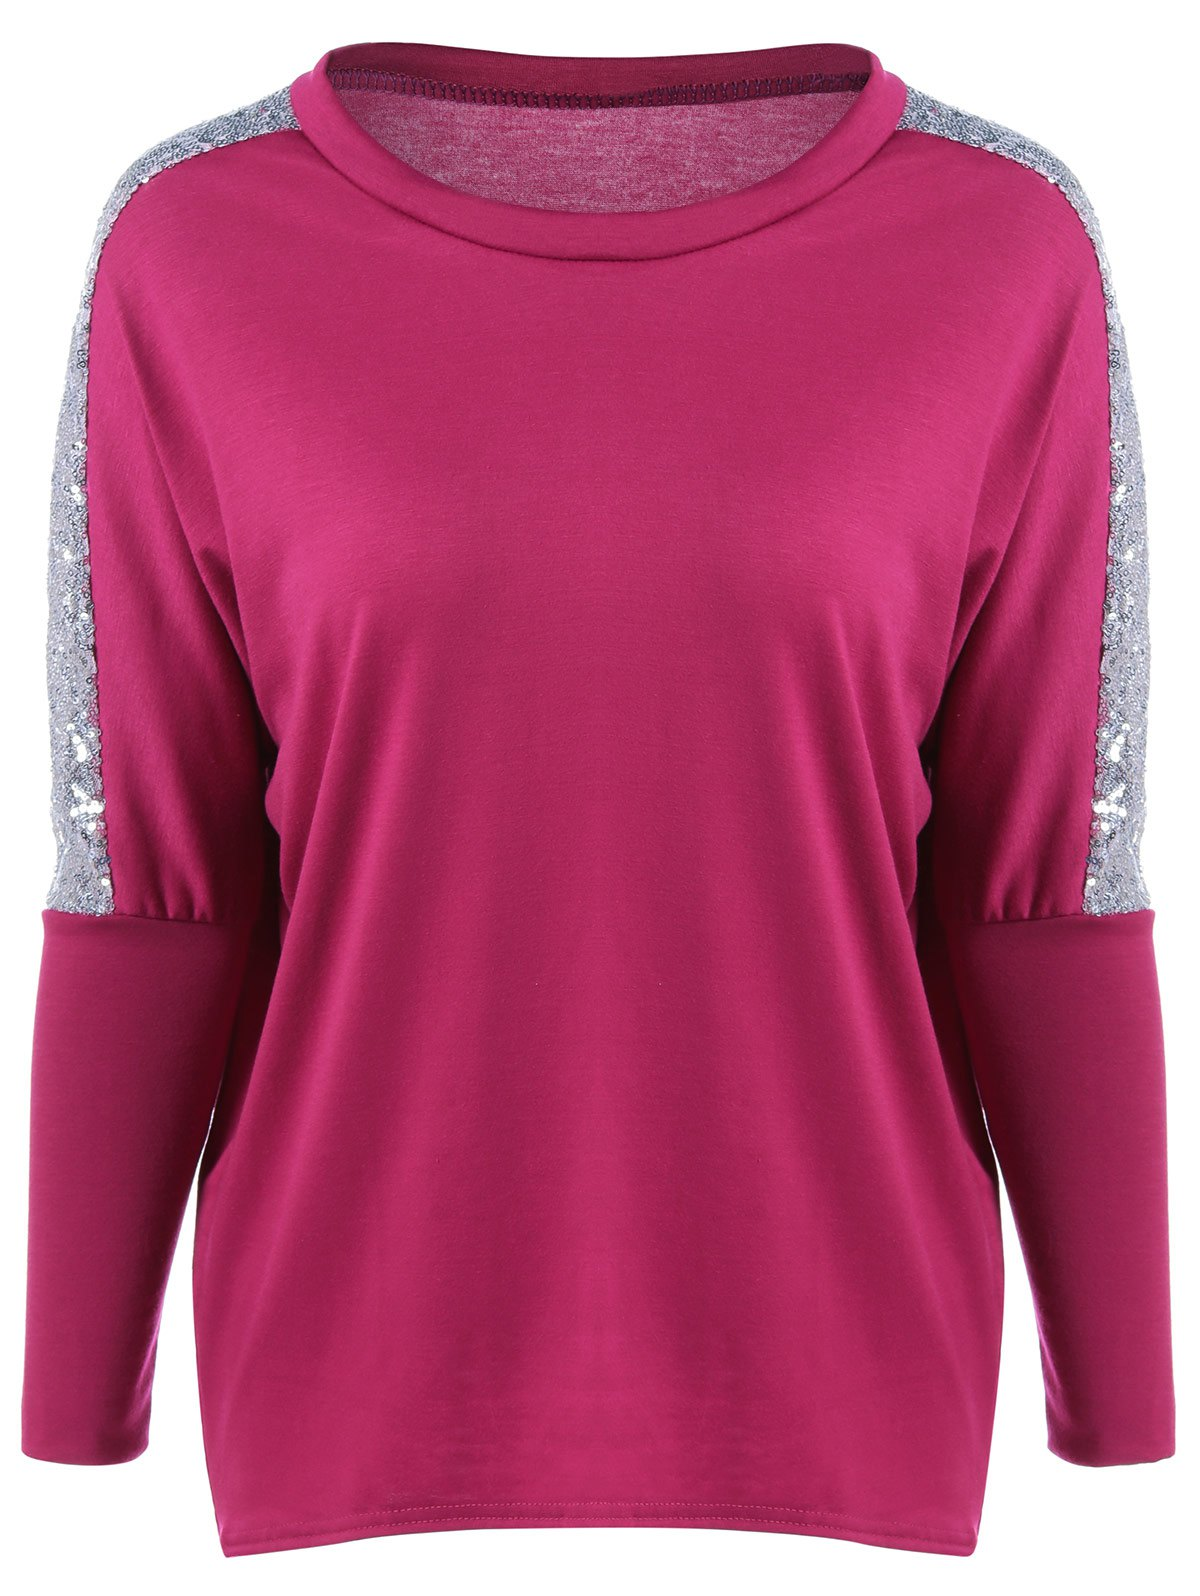 Sequin Jewel Neck Long Sleeve T-Shirt - ROSE RED XL